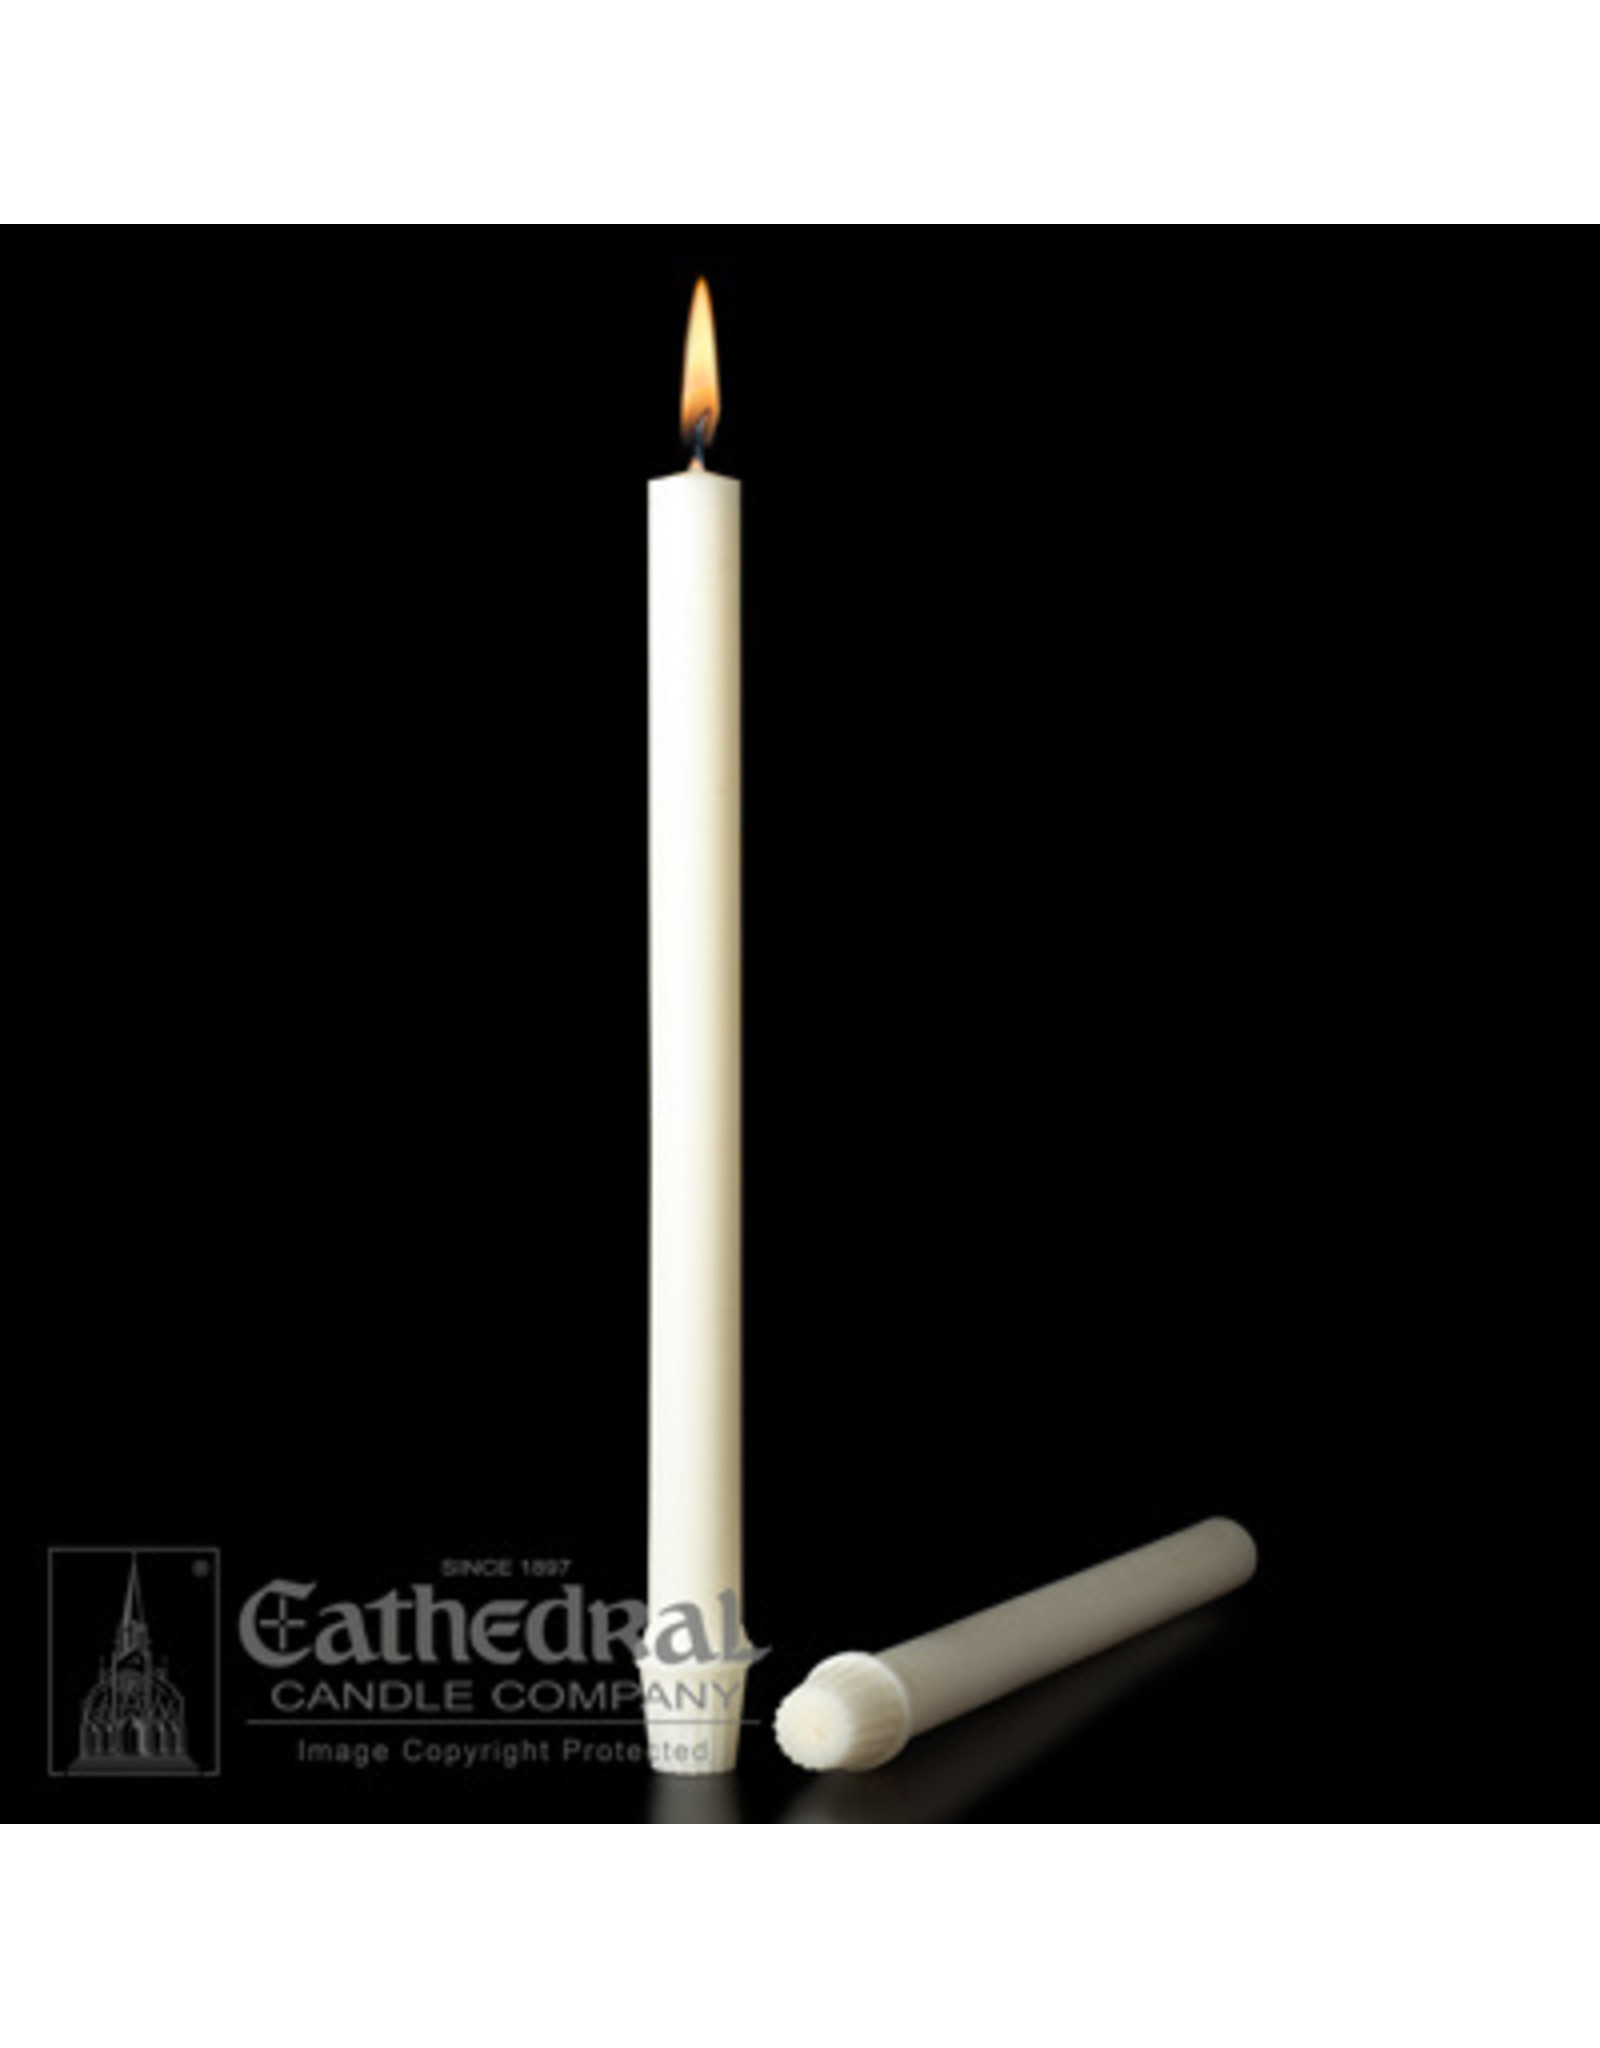 """51% Beeswax Altar Candles 7/8""""x16"""" Special Thin Wicks (18)"""